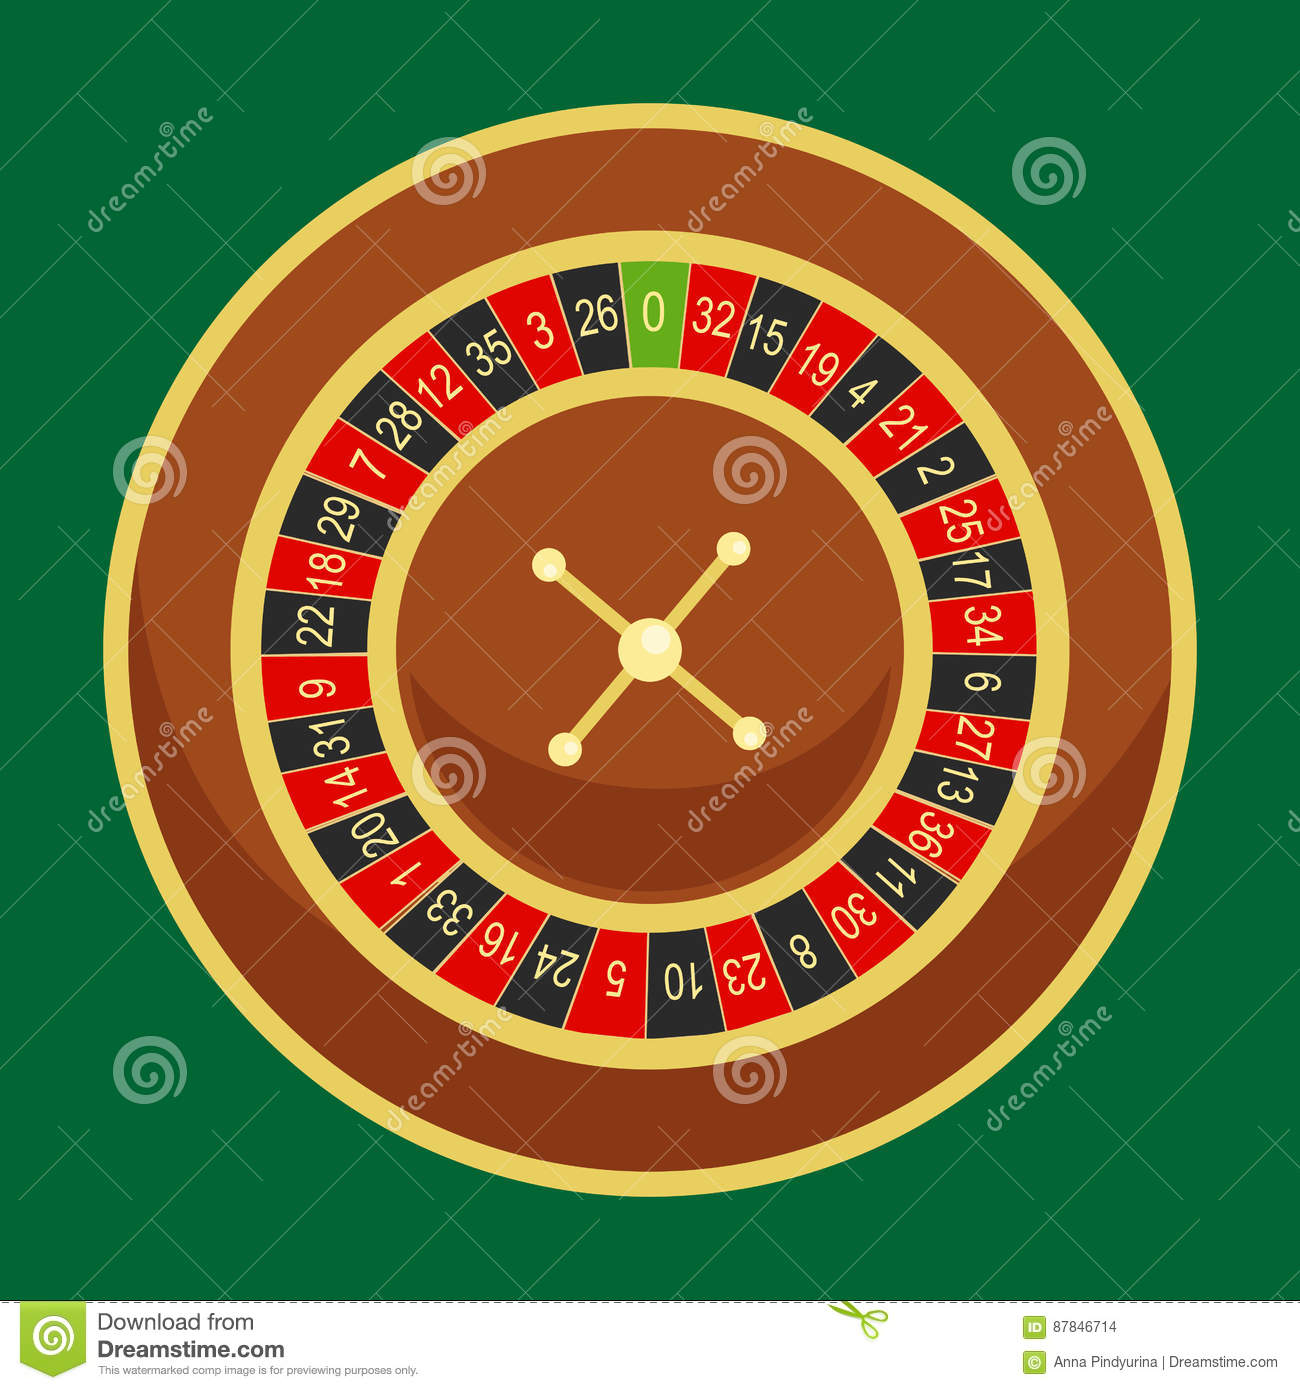 Casino roulette wheel go round for risk game in vegas, lucky gambling fortune, play in betting for chance on win